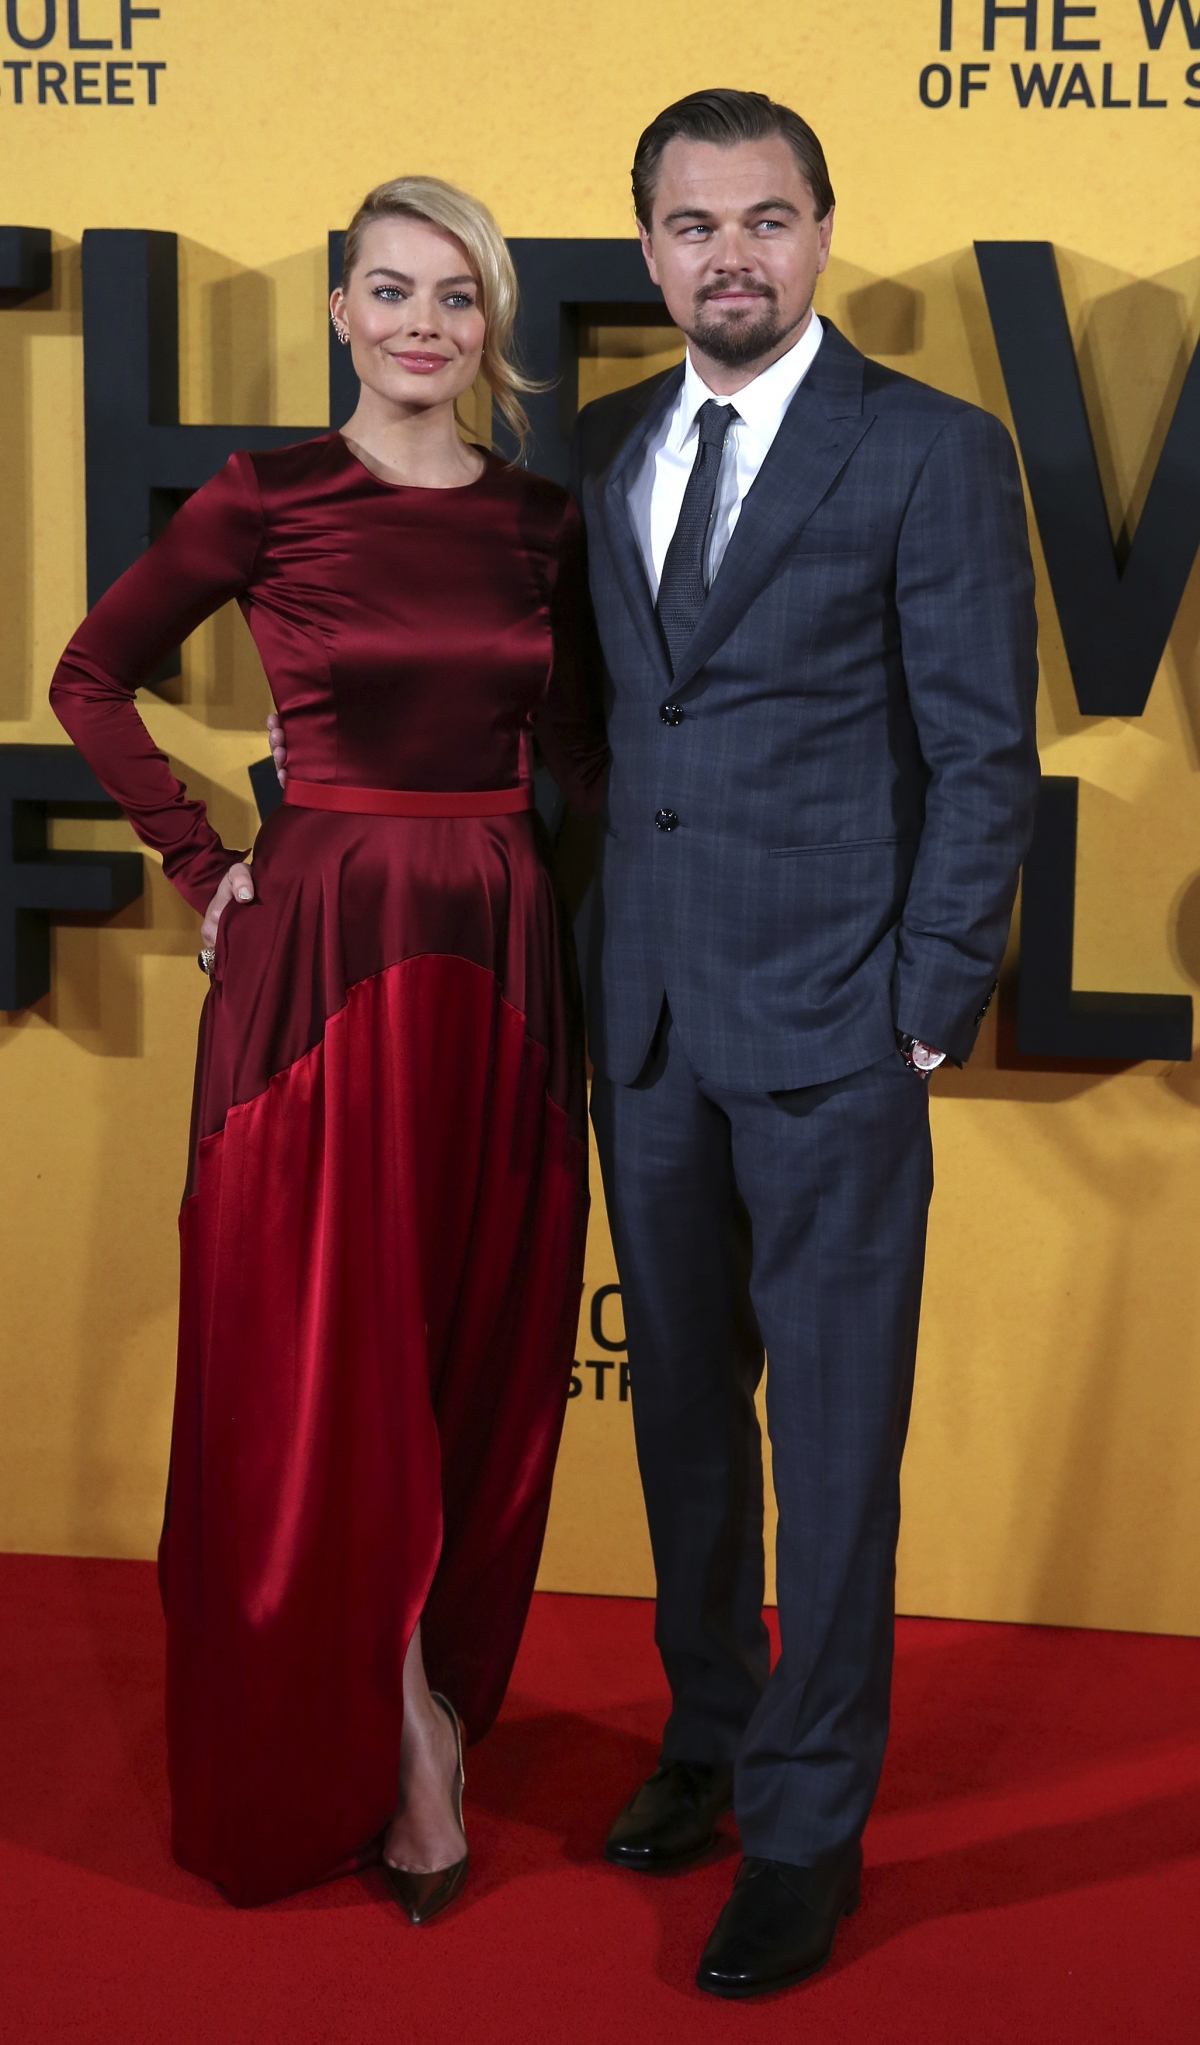 The Wolf Of Wall Street UK Premiere: Leonardo DiCaprio and ... Wolf Of Wall Street Movie Cover